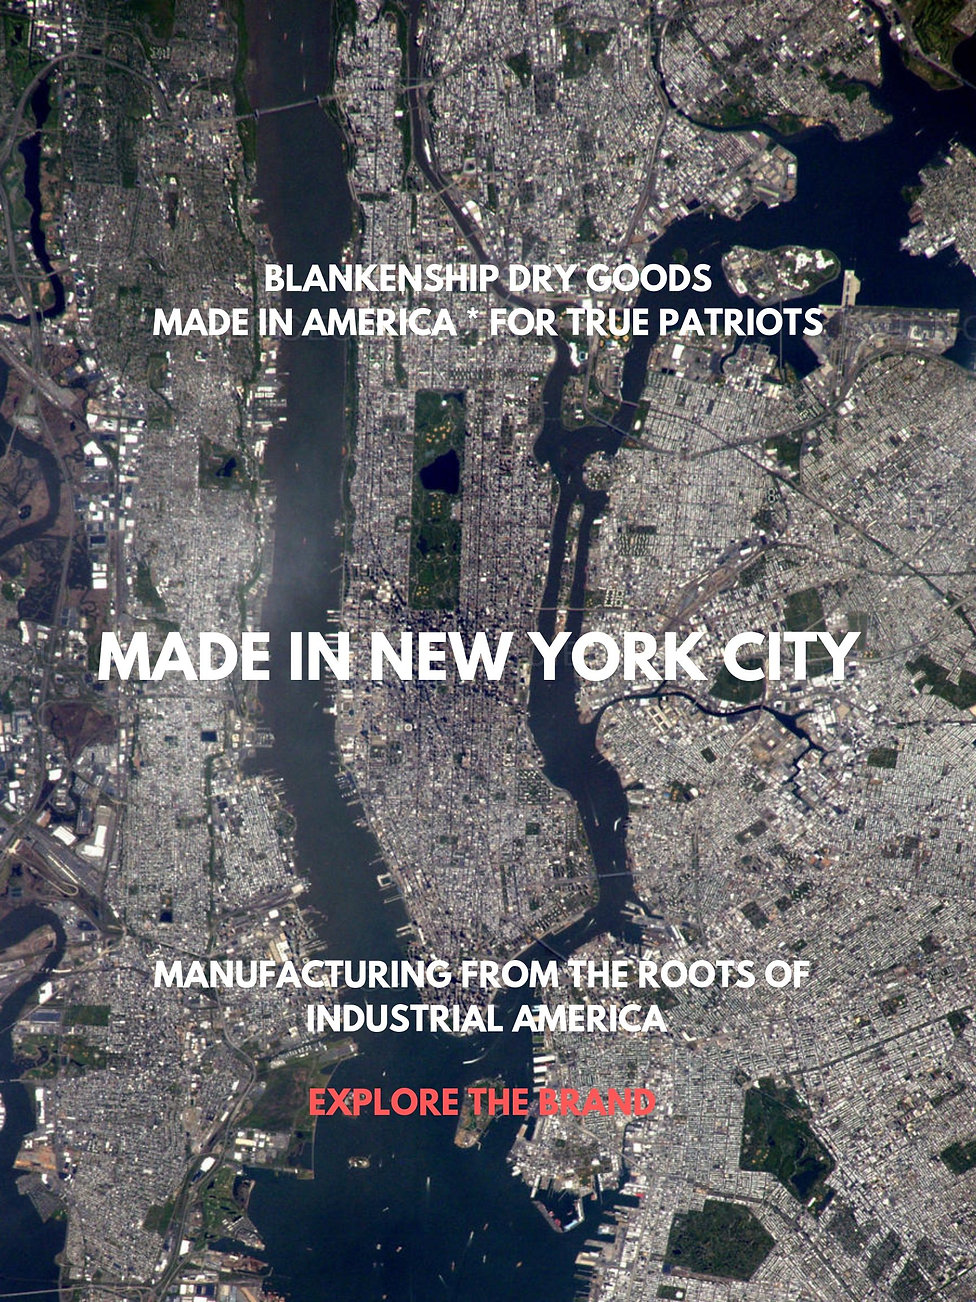 BLANKENSHIP DRY GOODS MADE IN AMERICA _